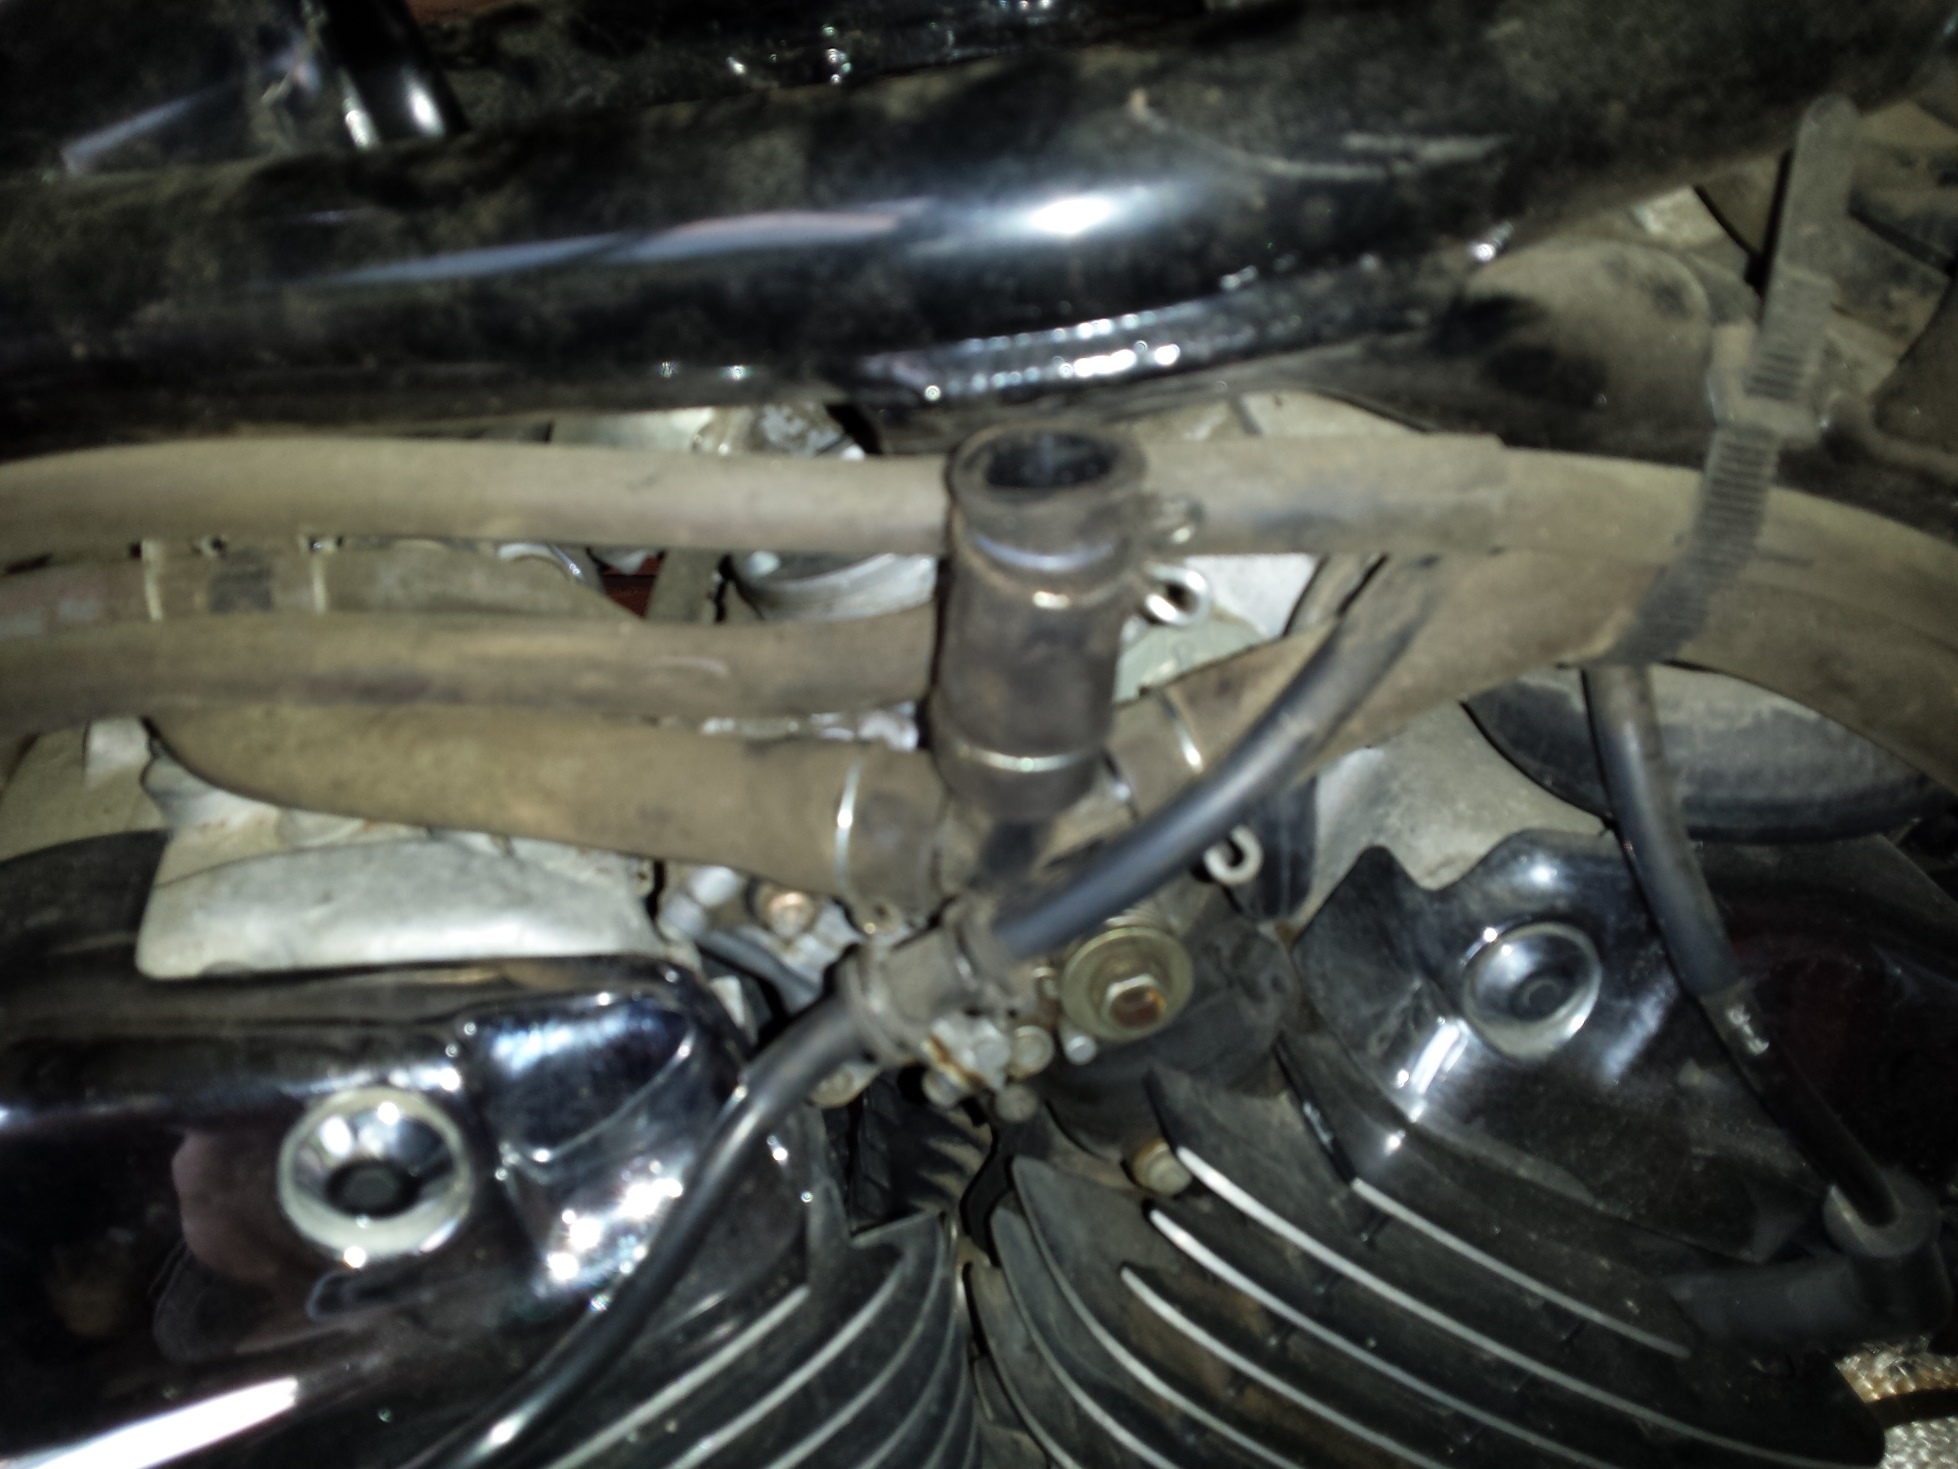 Maxresdefault further Honda Shadow Diagram Honda Vt C Shadow Spirit Motorcycle Owners Manual further Suzuki Gs C Usa E Carburetor Gs B Gs Cfnogs Gs Ecfno Big Img A together with S L as well Maxresdefault. on honda shadow 750 carburetor